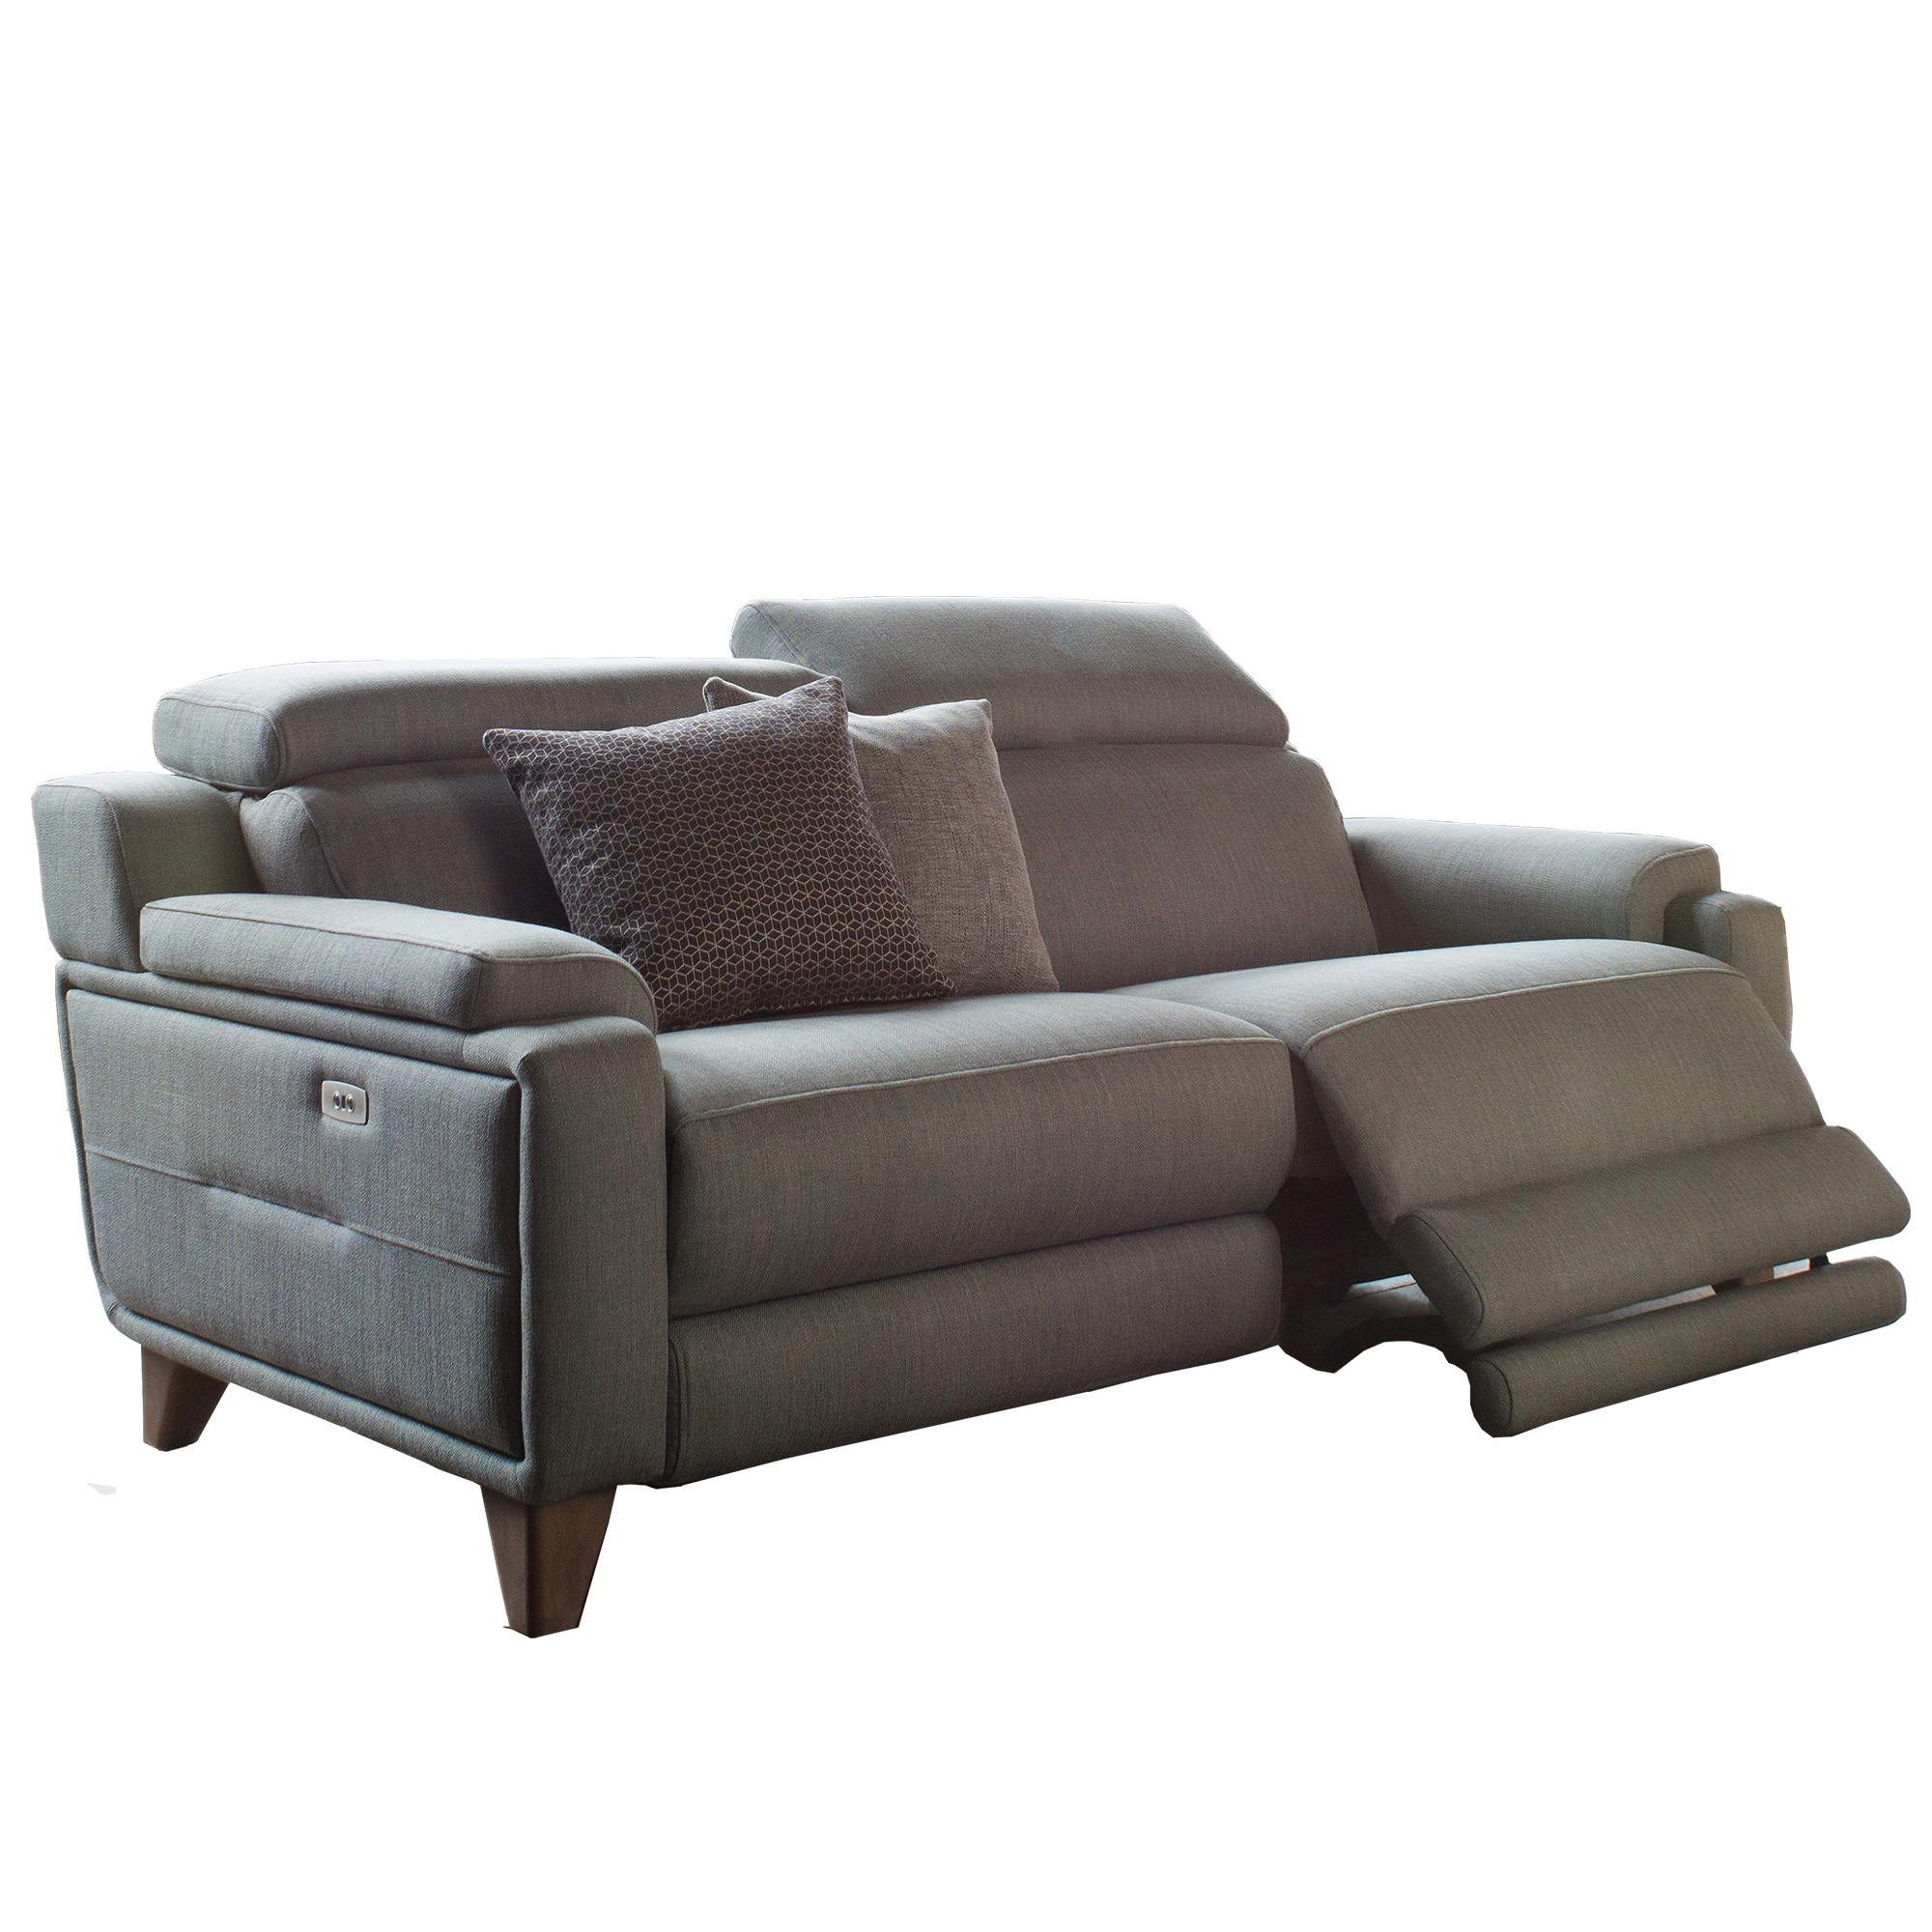 Surprising Parker Knoll Evolution Large 2 Seater Electric Recliner Sofa Gmtry Best Dining Table And Chair Ideas Images Gmtryco